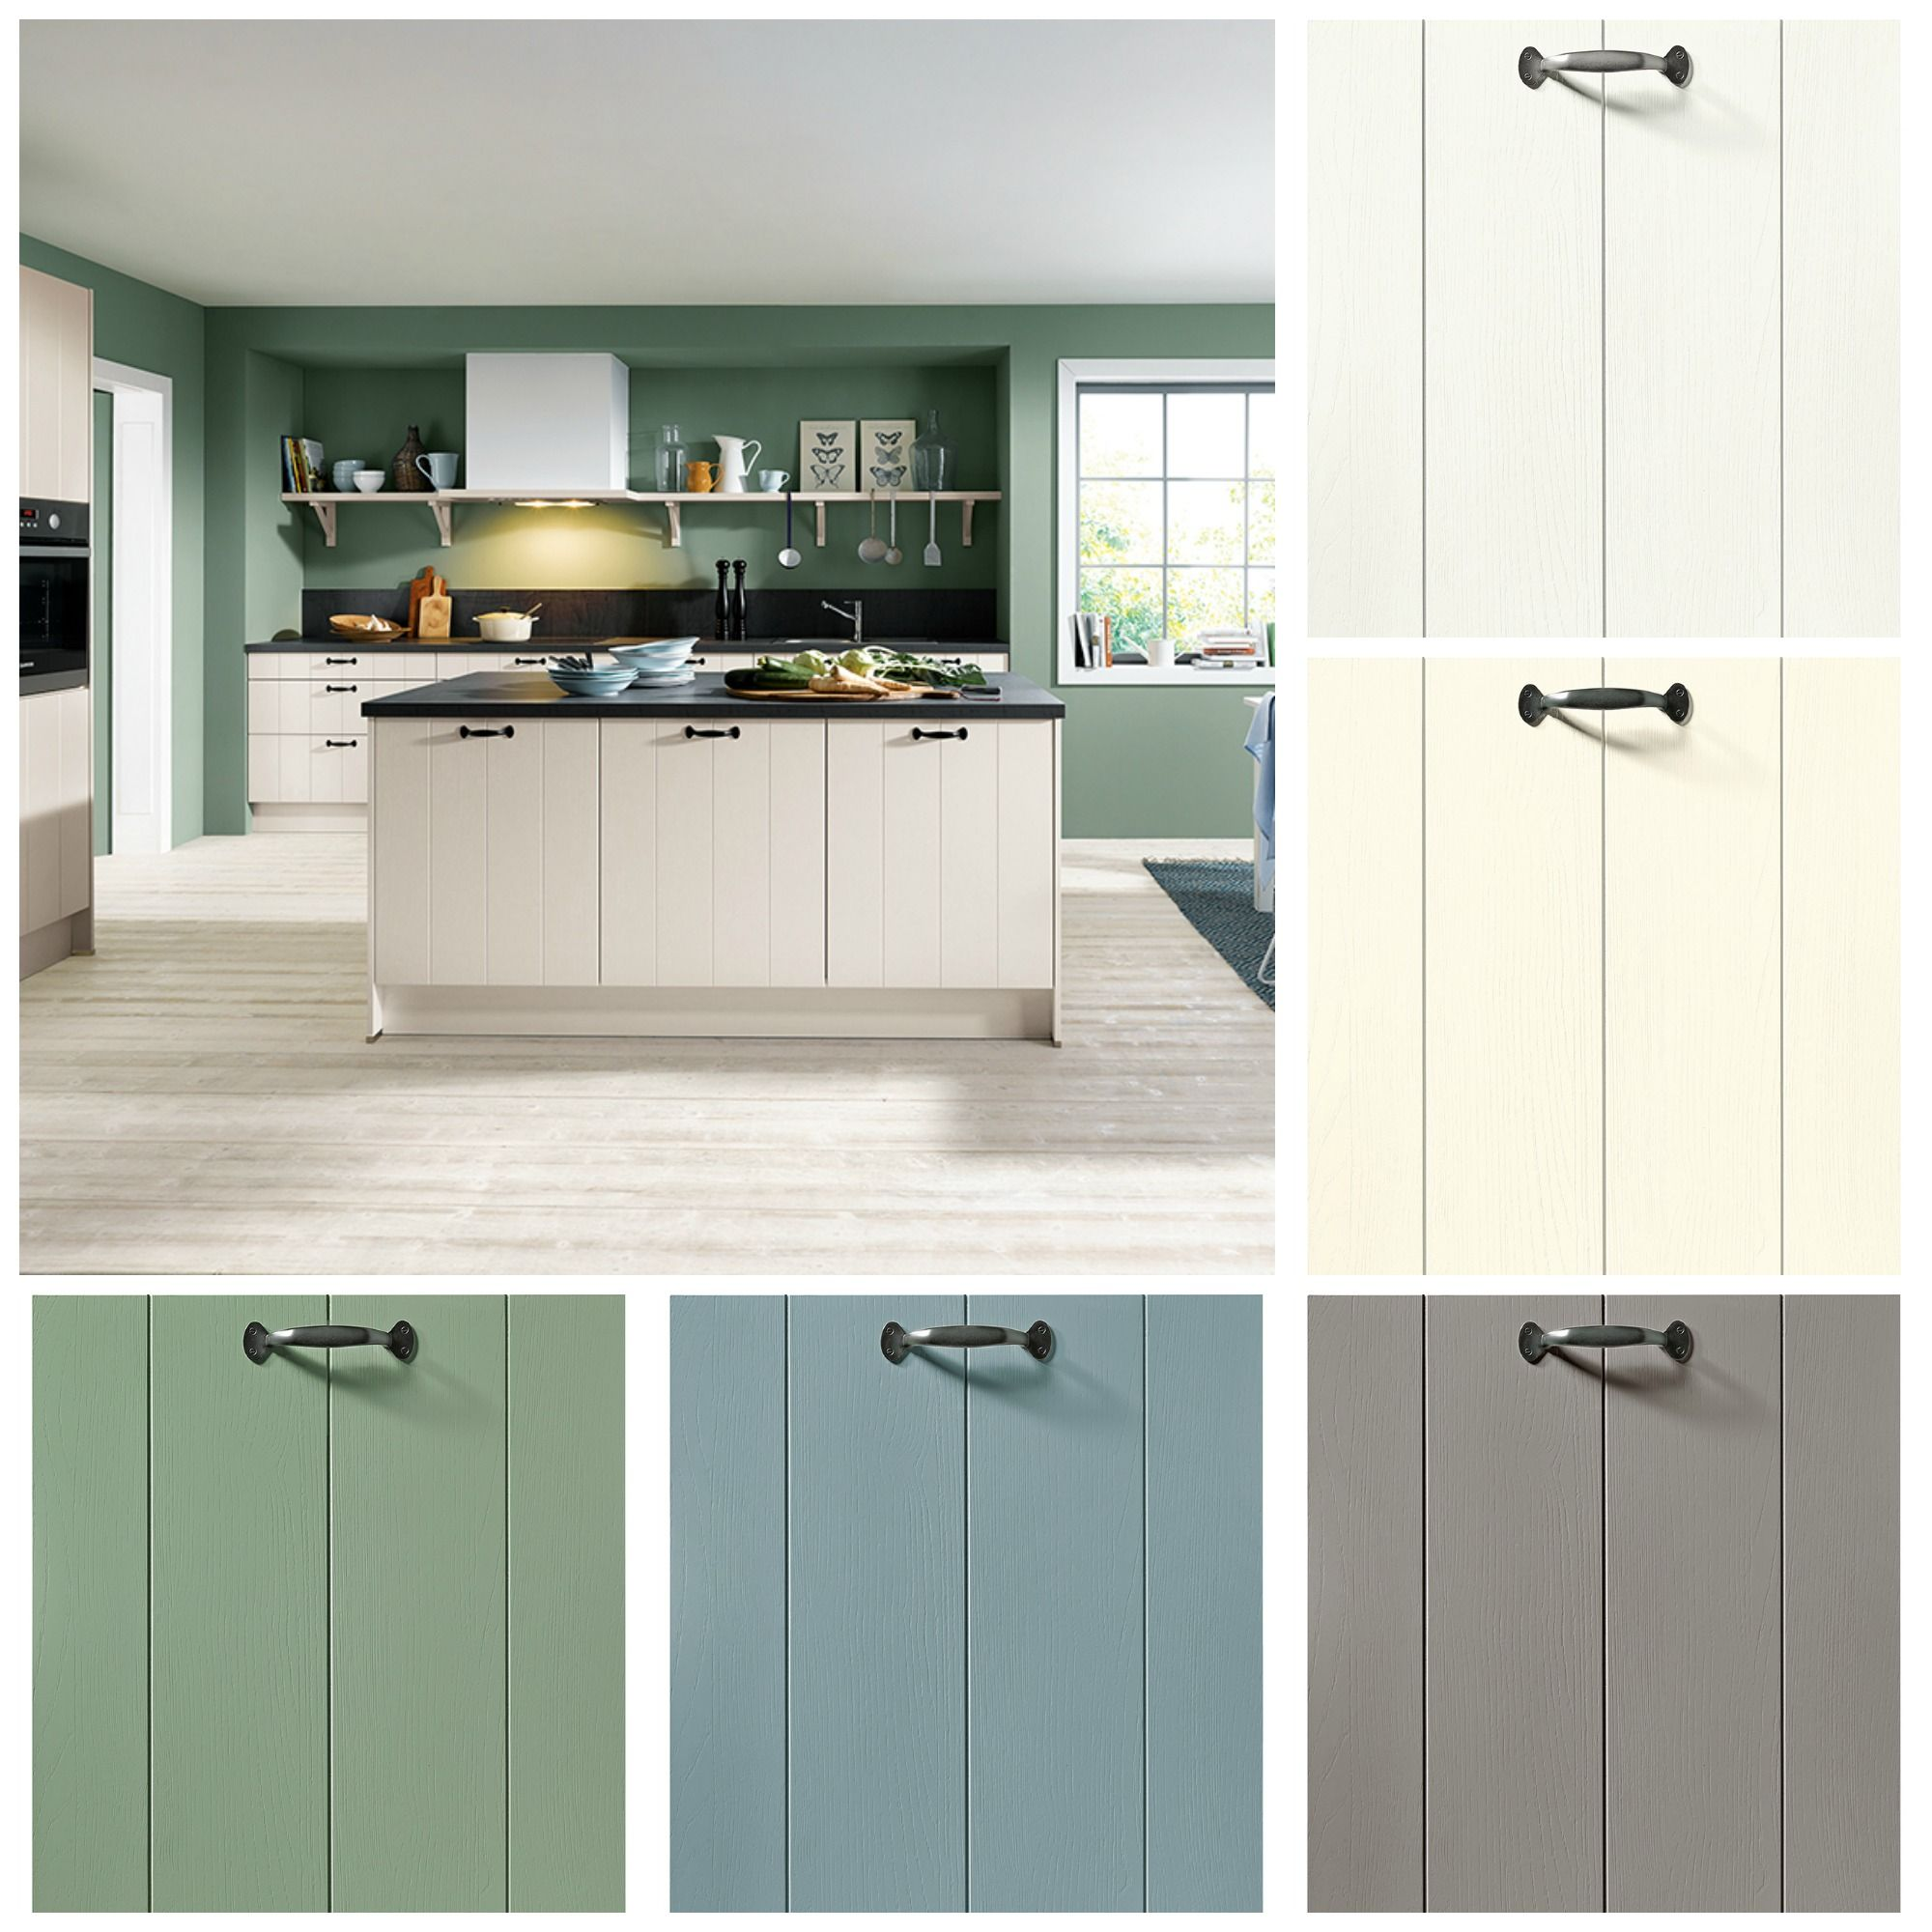 The Schuller Domus Country Kitchens Are Available In Six Beautiful